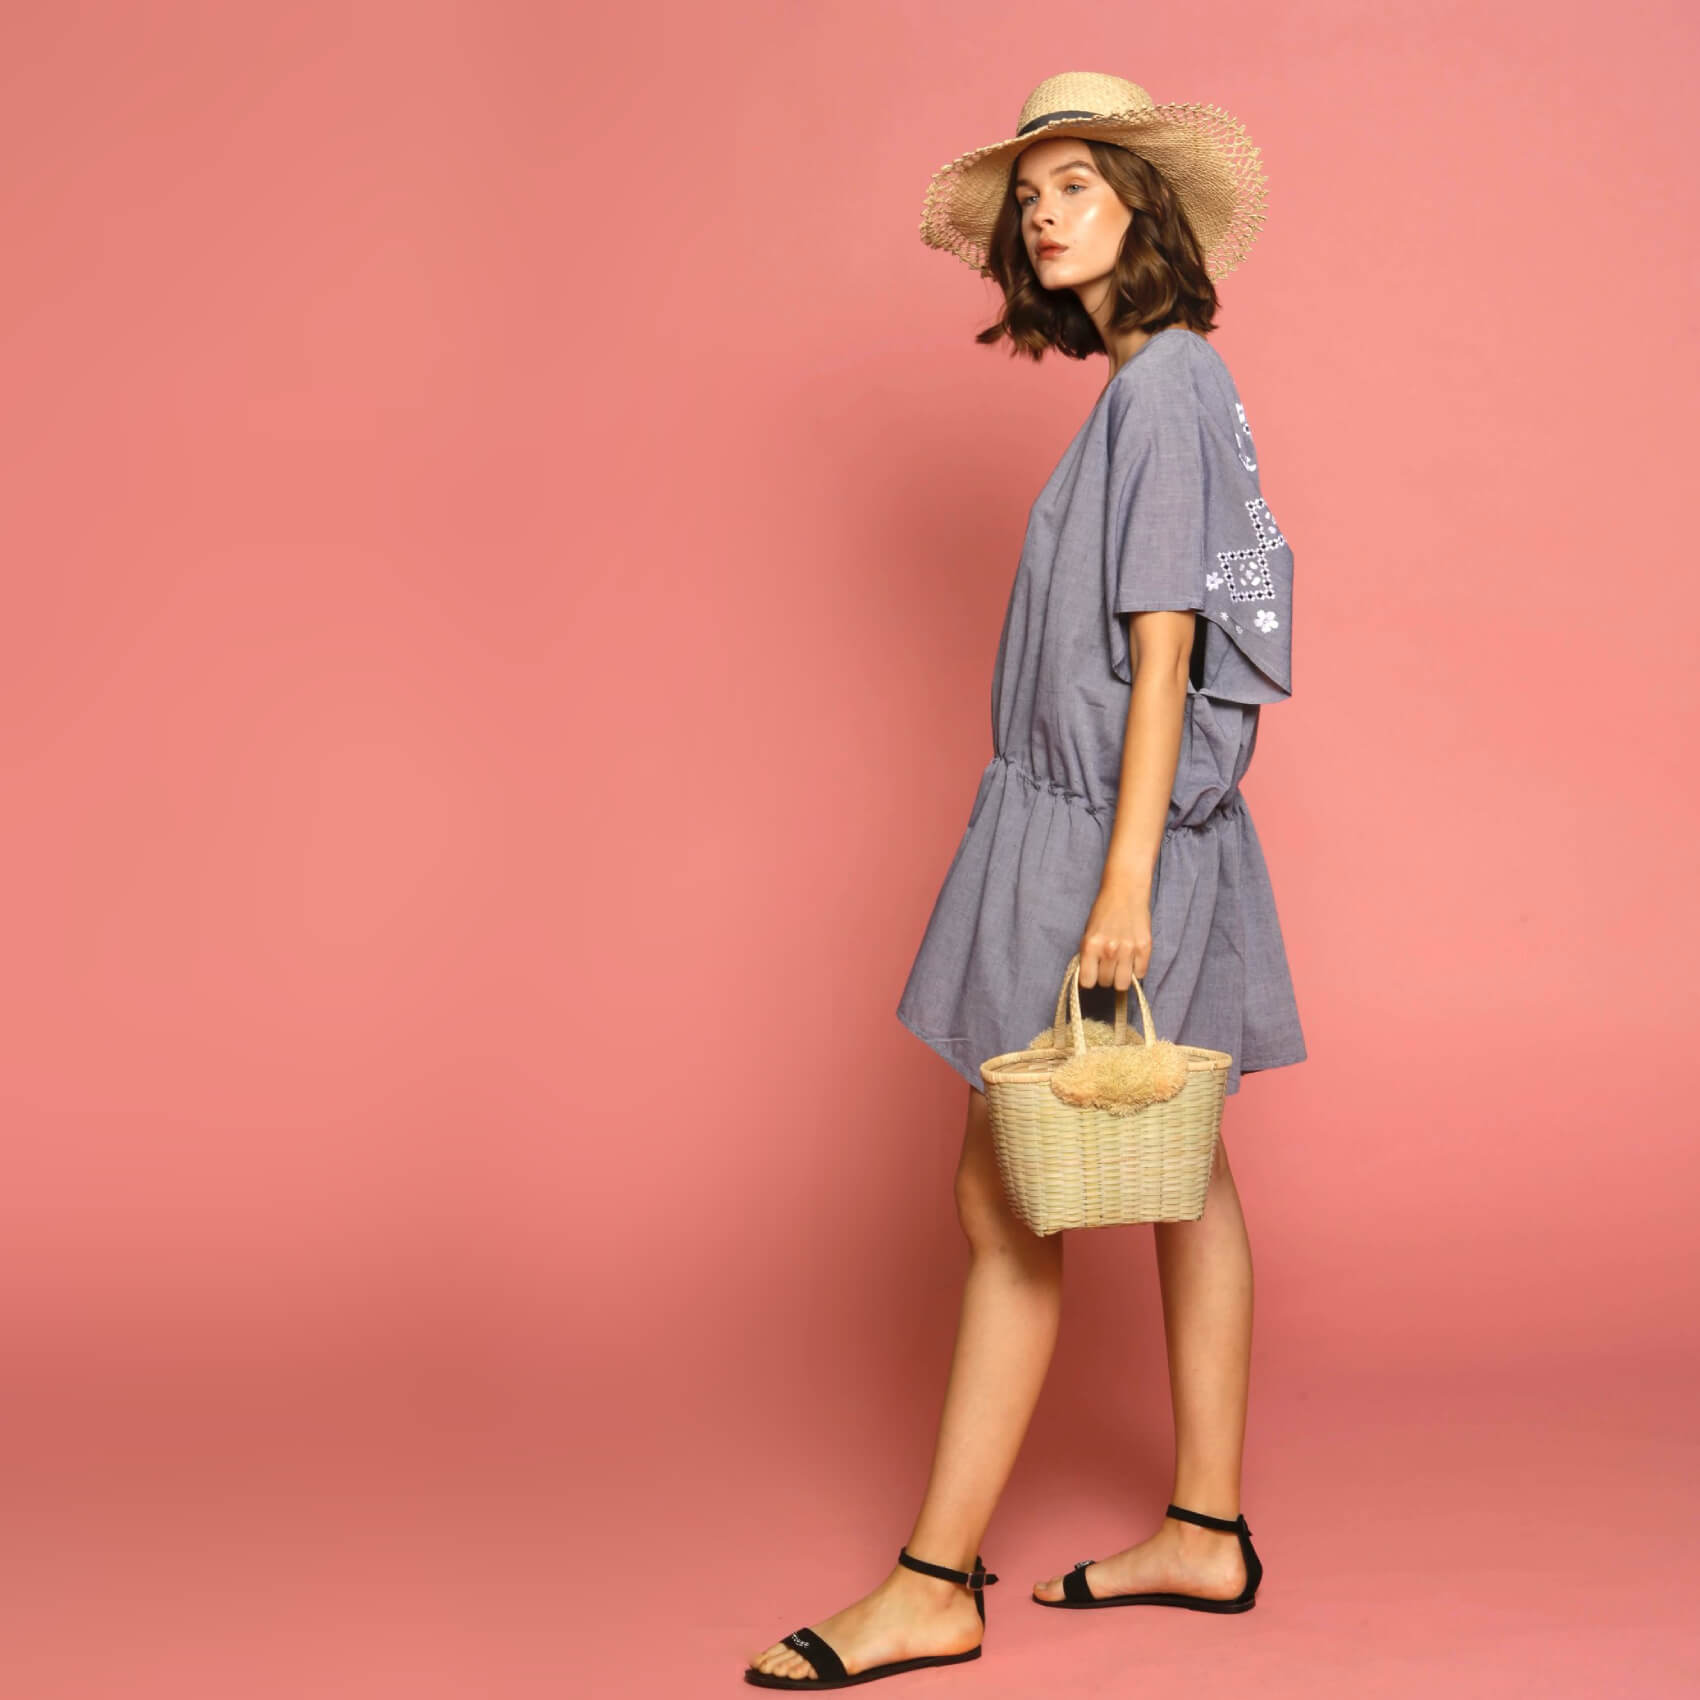 Cover-up dress and beachwear accessories collection